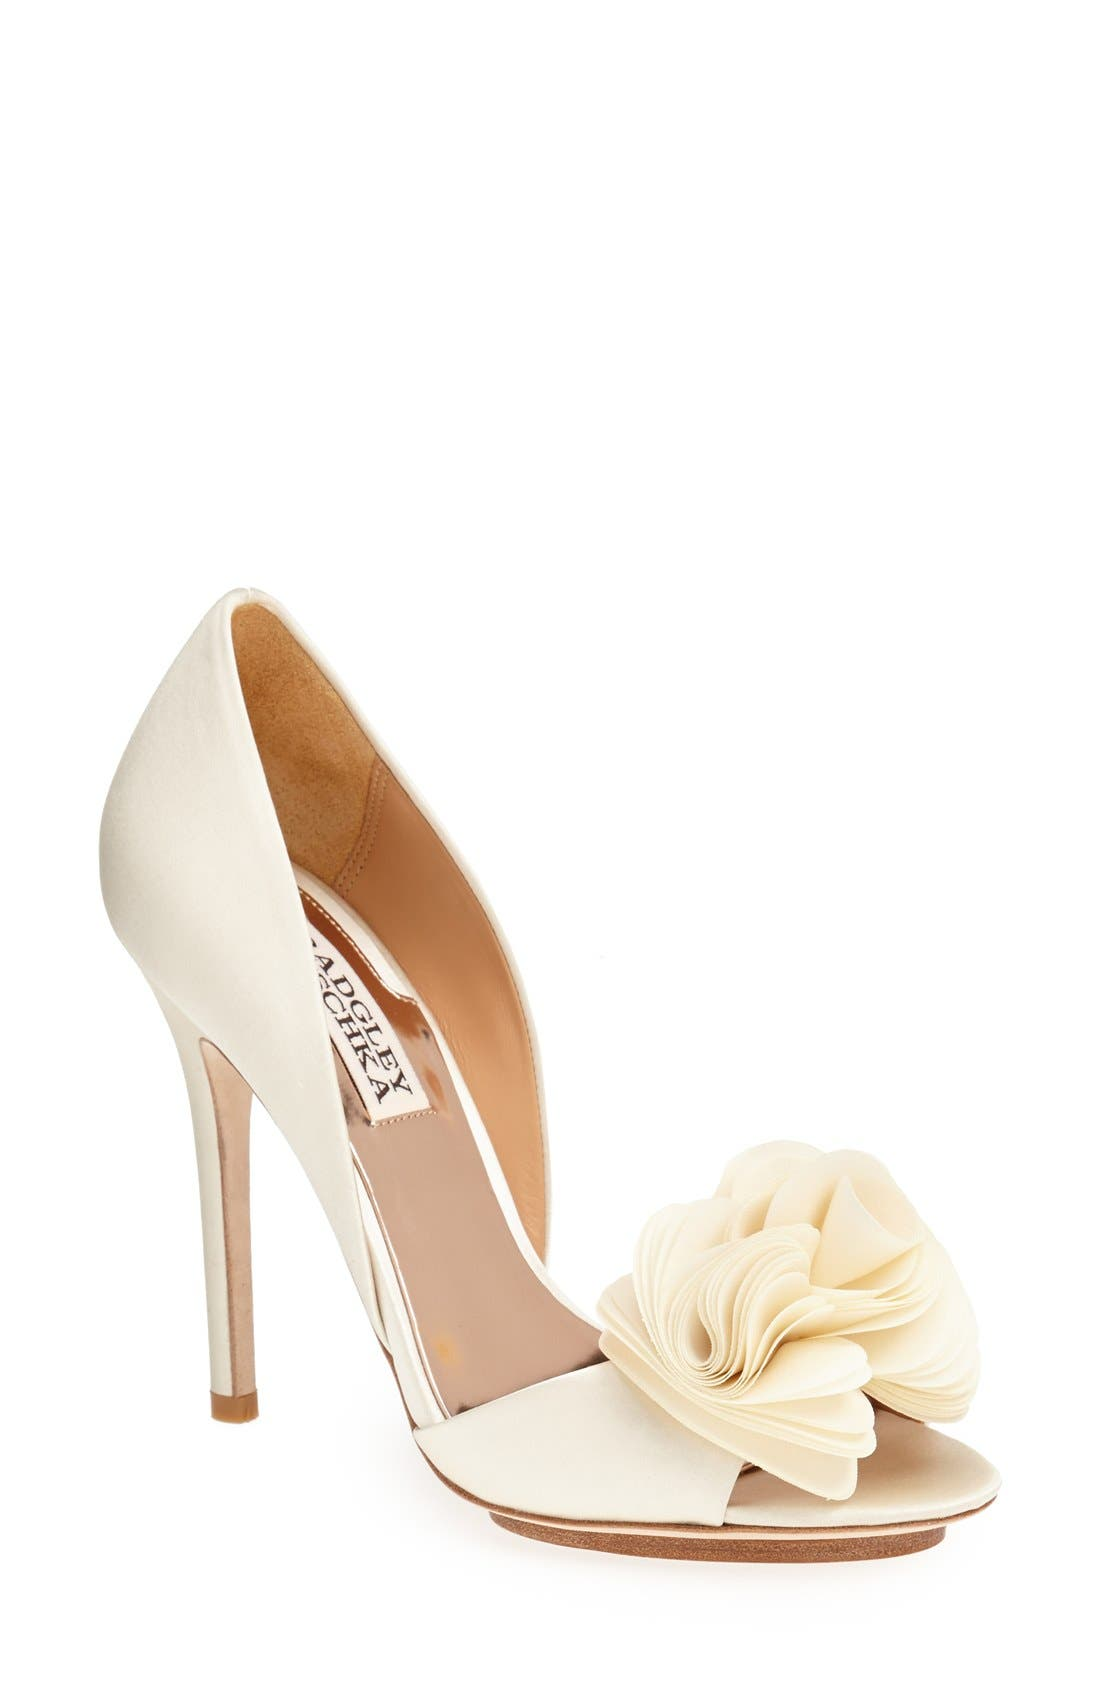 Alternate Image 1 Selected - Badgley Mischka 'Blossom' Open Toe d'Orsay Pump (Women)